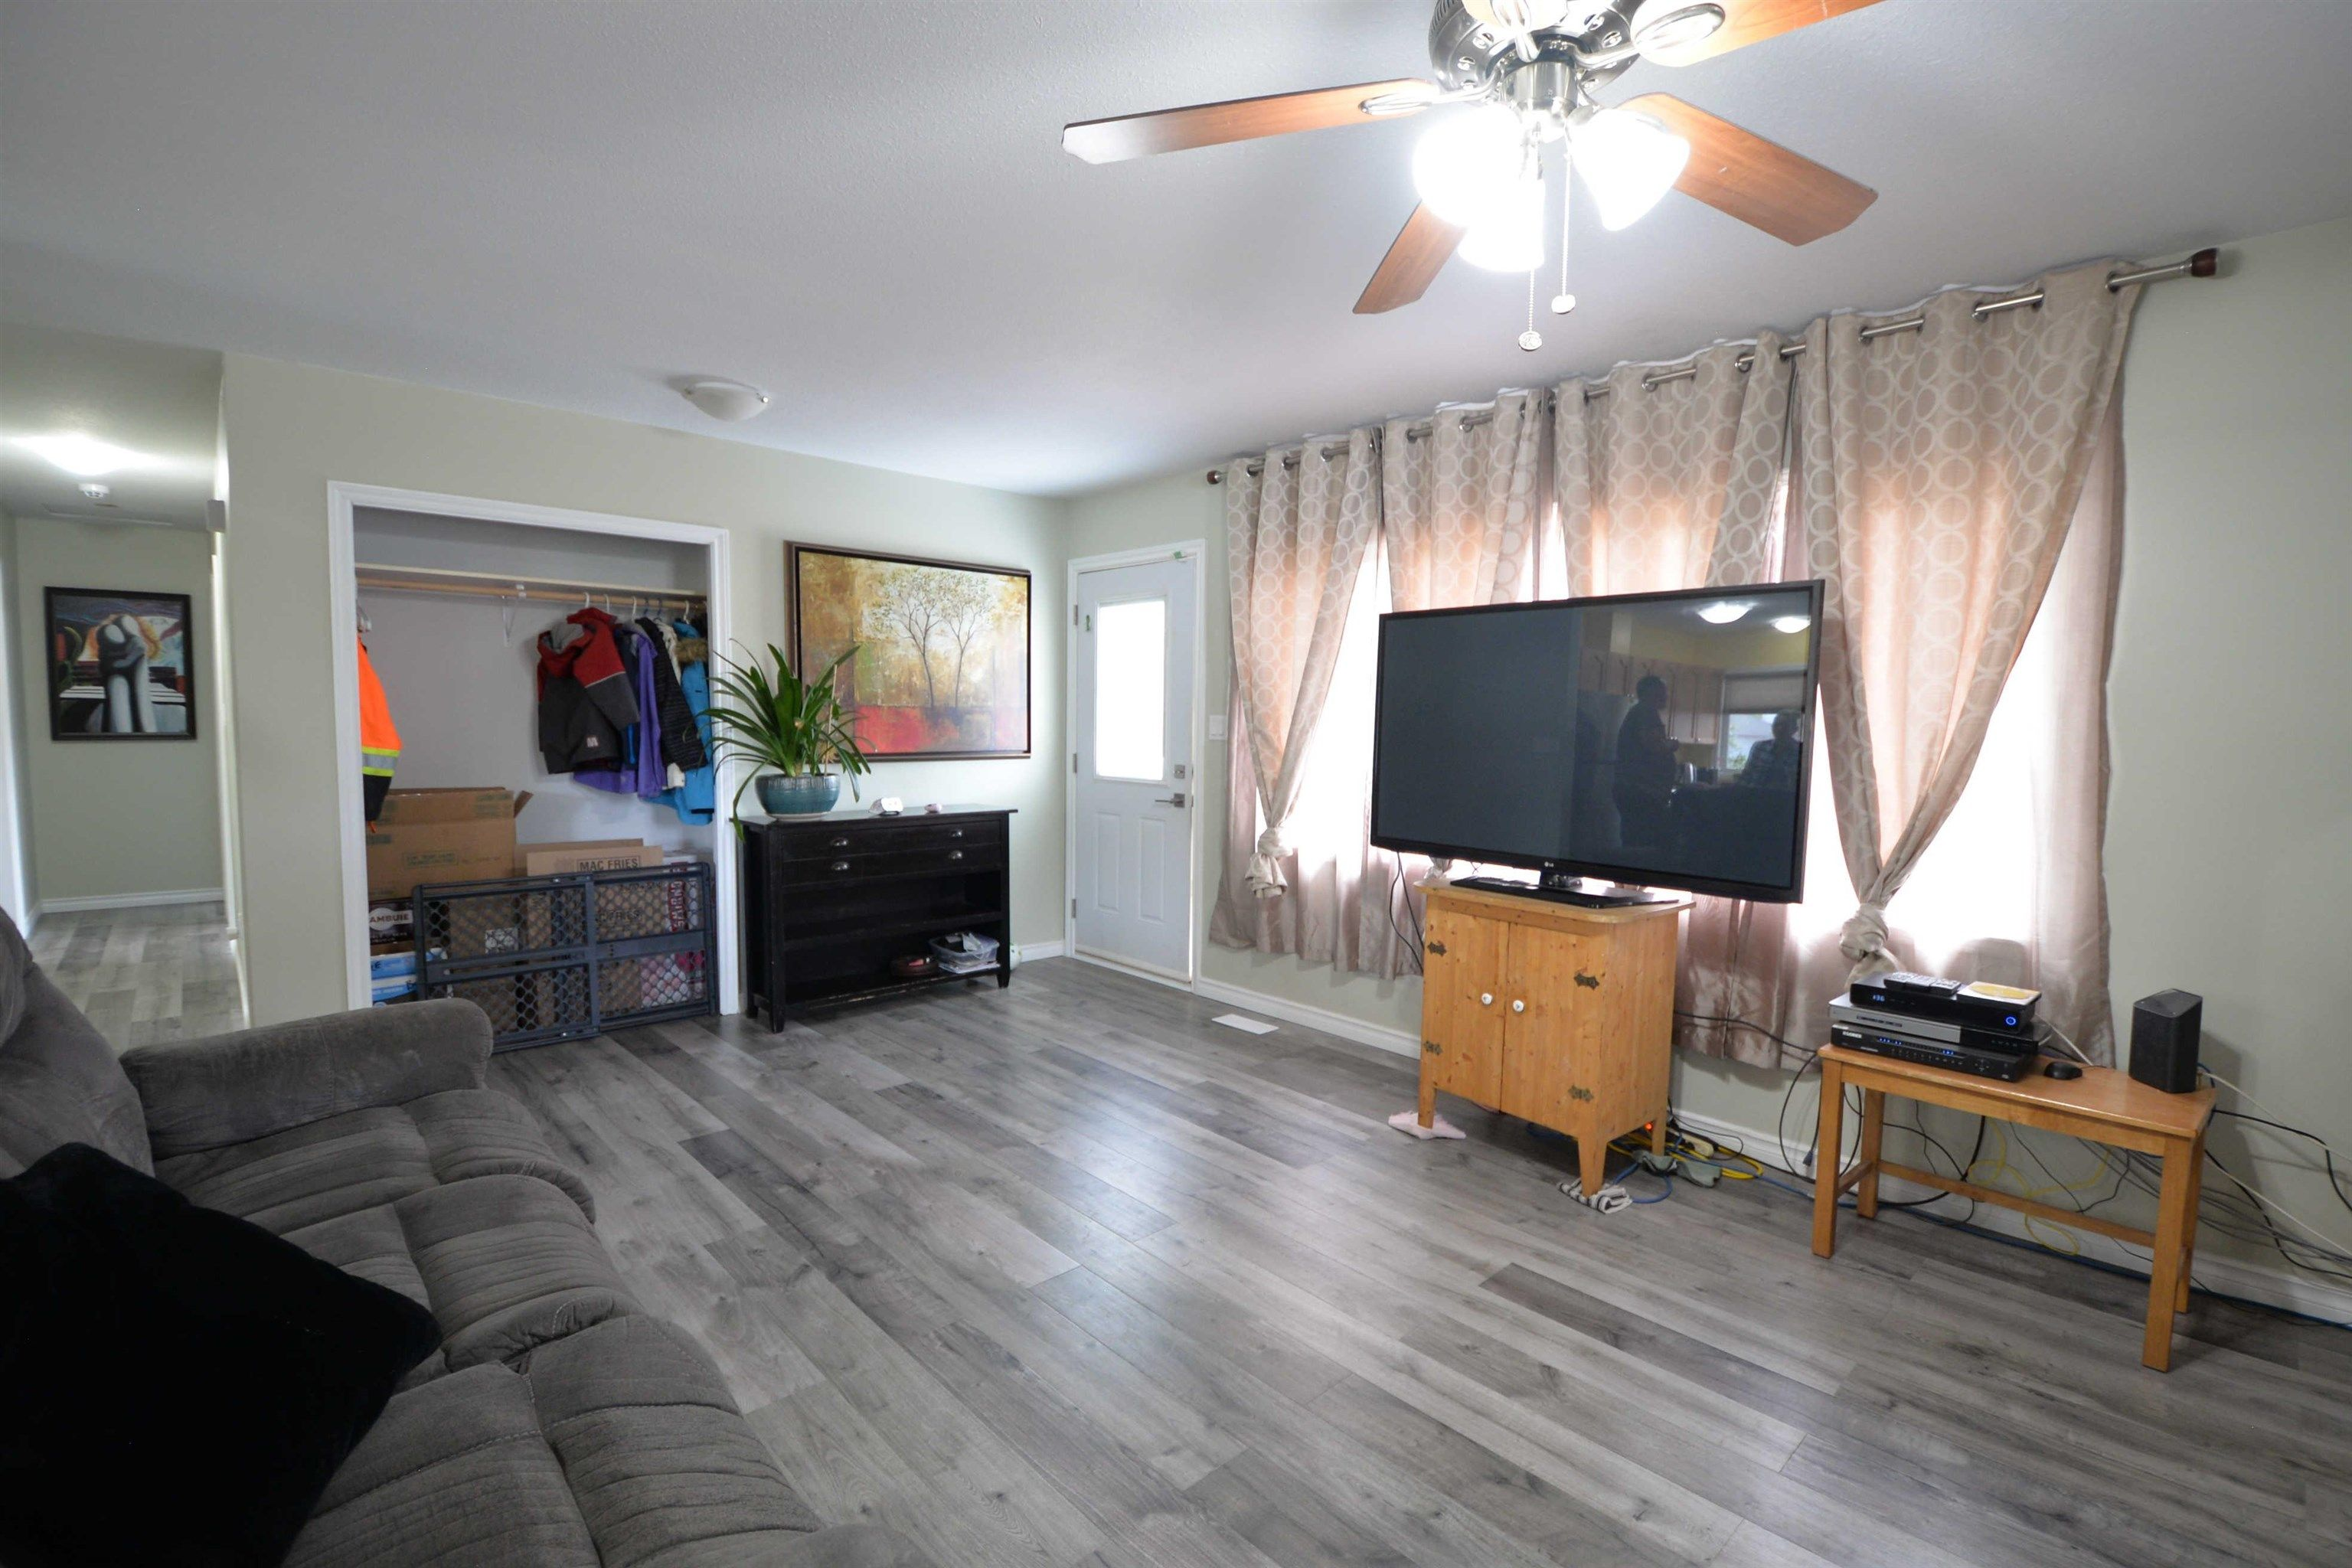 """Photo 8: Photos: 2306 OAK Street in Prince George: VLA House for sale in """"VLA"""" (PG City Central (Zone 72))  : MLS®# R2615261"""